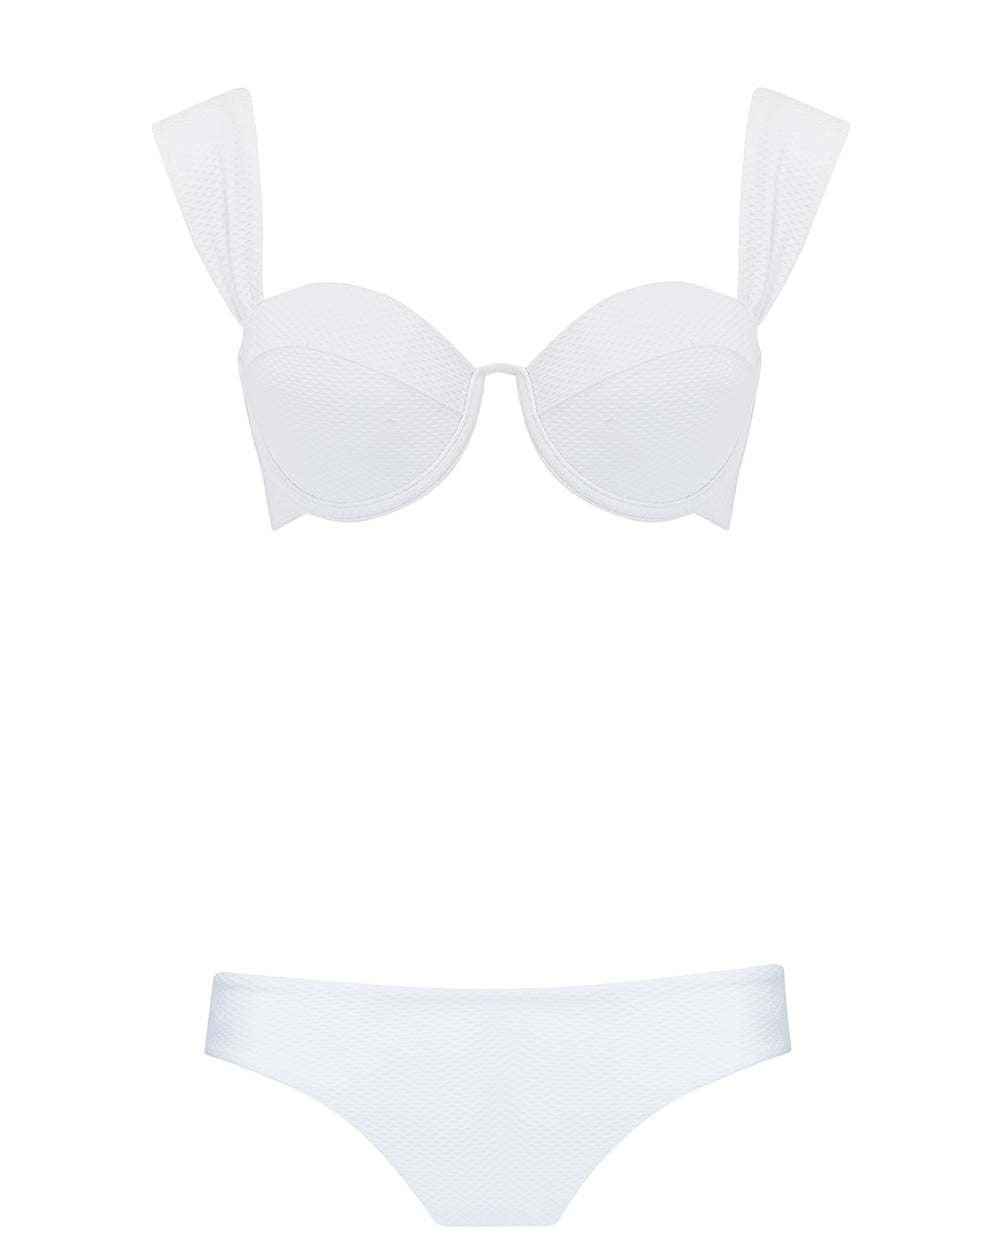 The Modern Bustier Set - Ivory